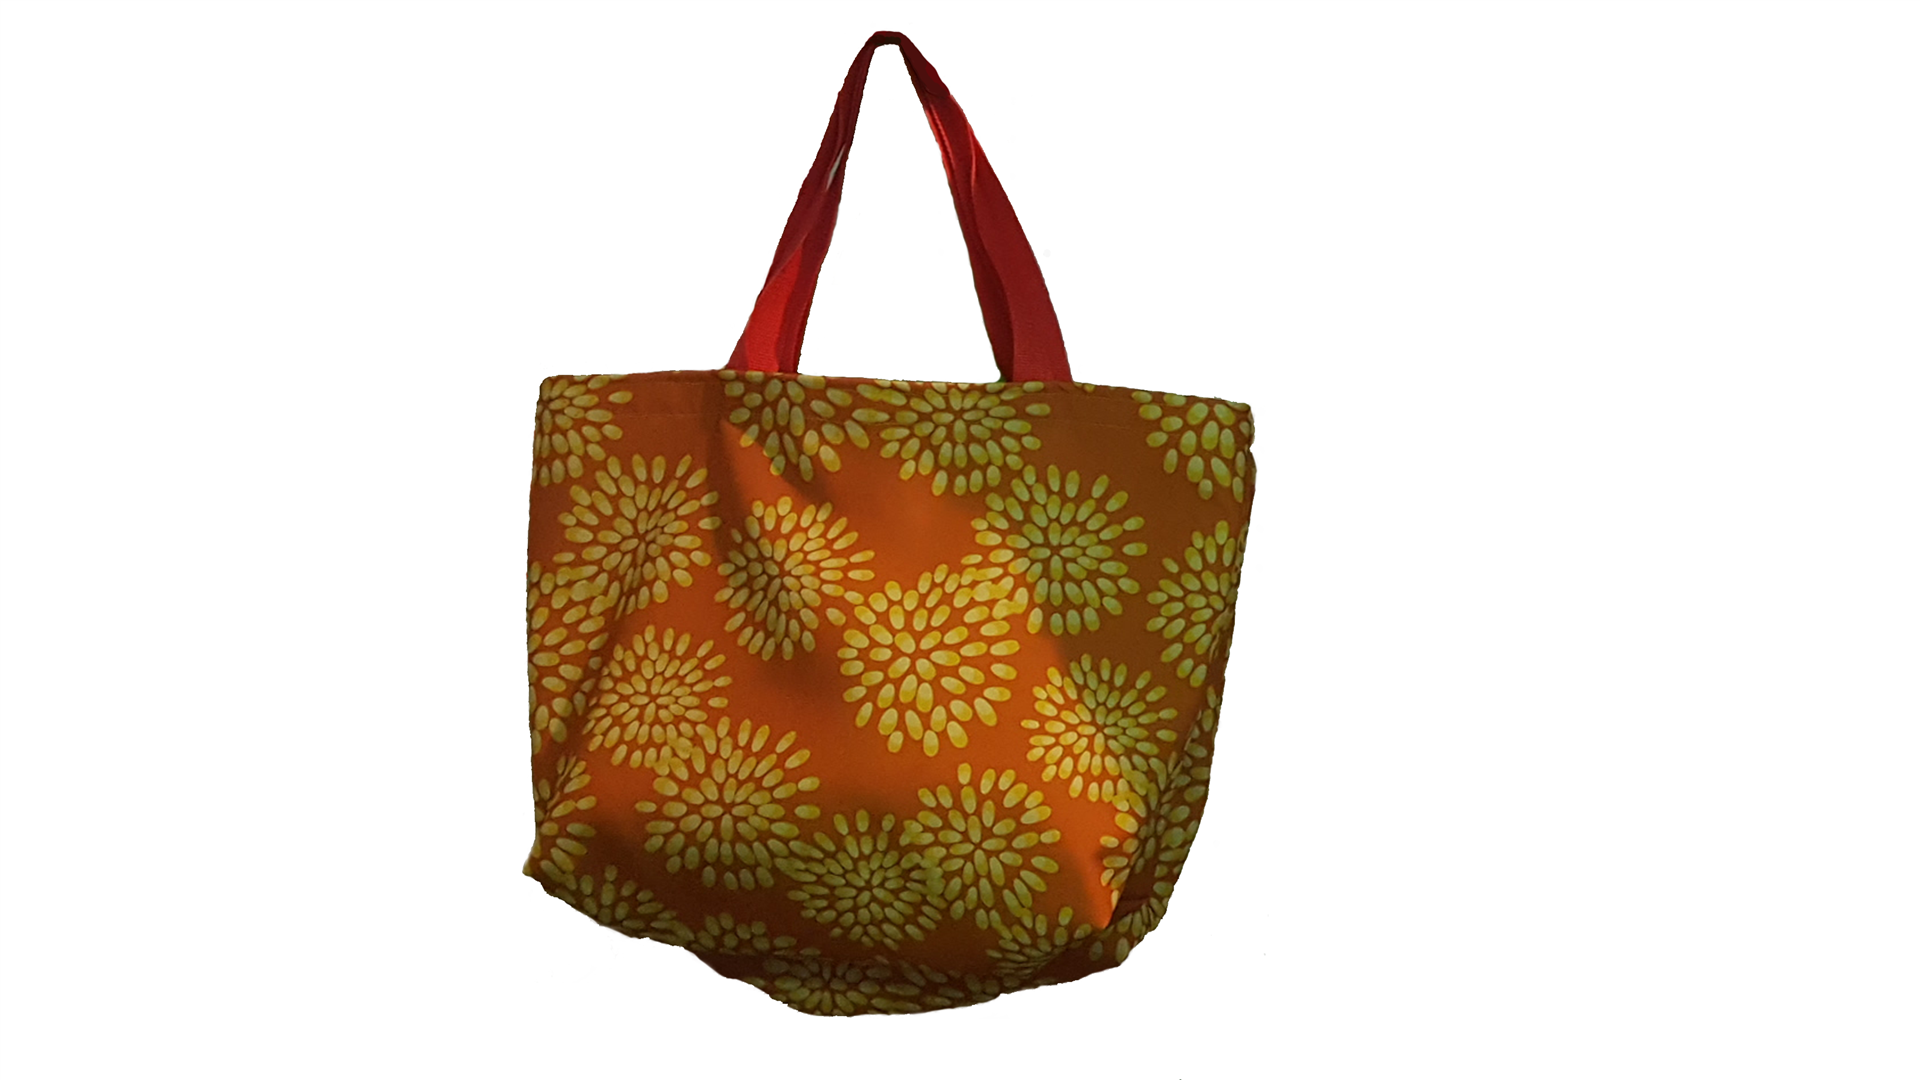 Flash Tote_Coral Fingers (Large)